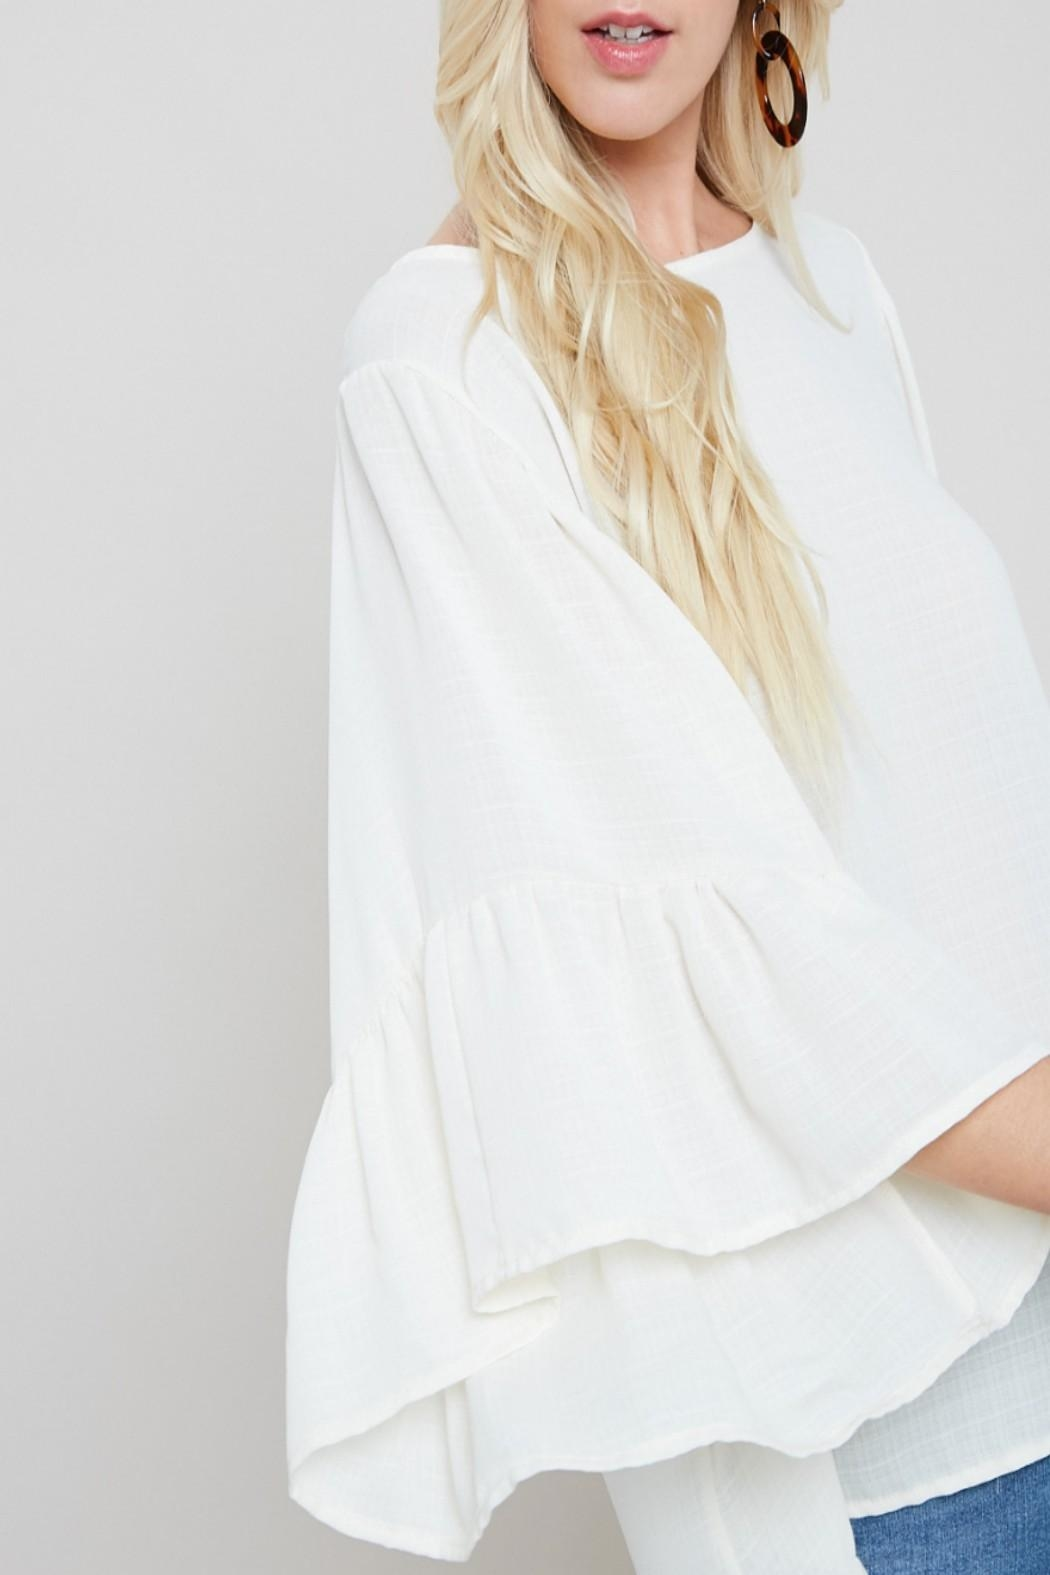 eesome Boho Bell-Sleeve Top - Front Full Image